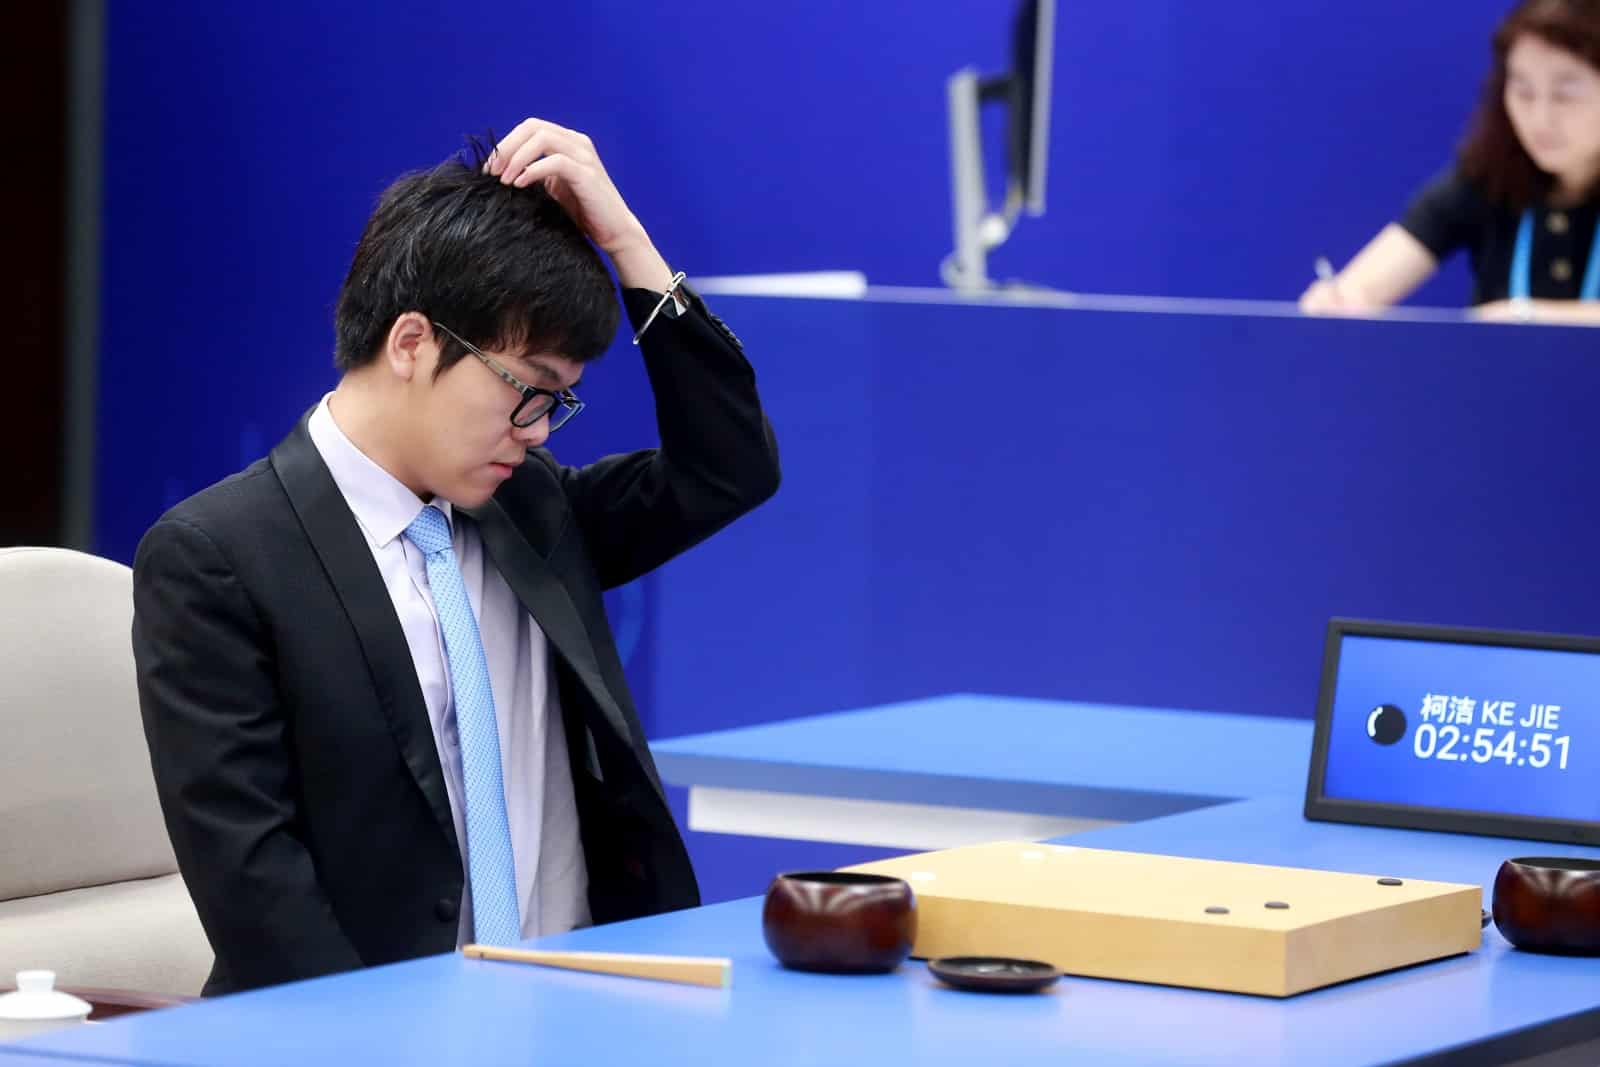 Creativity and artificial intelligence - alphago defeats grandmaster ke jie